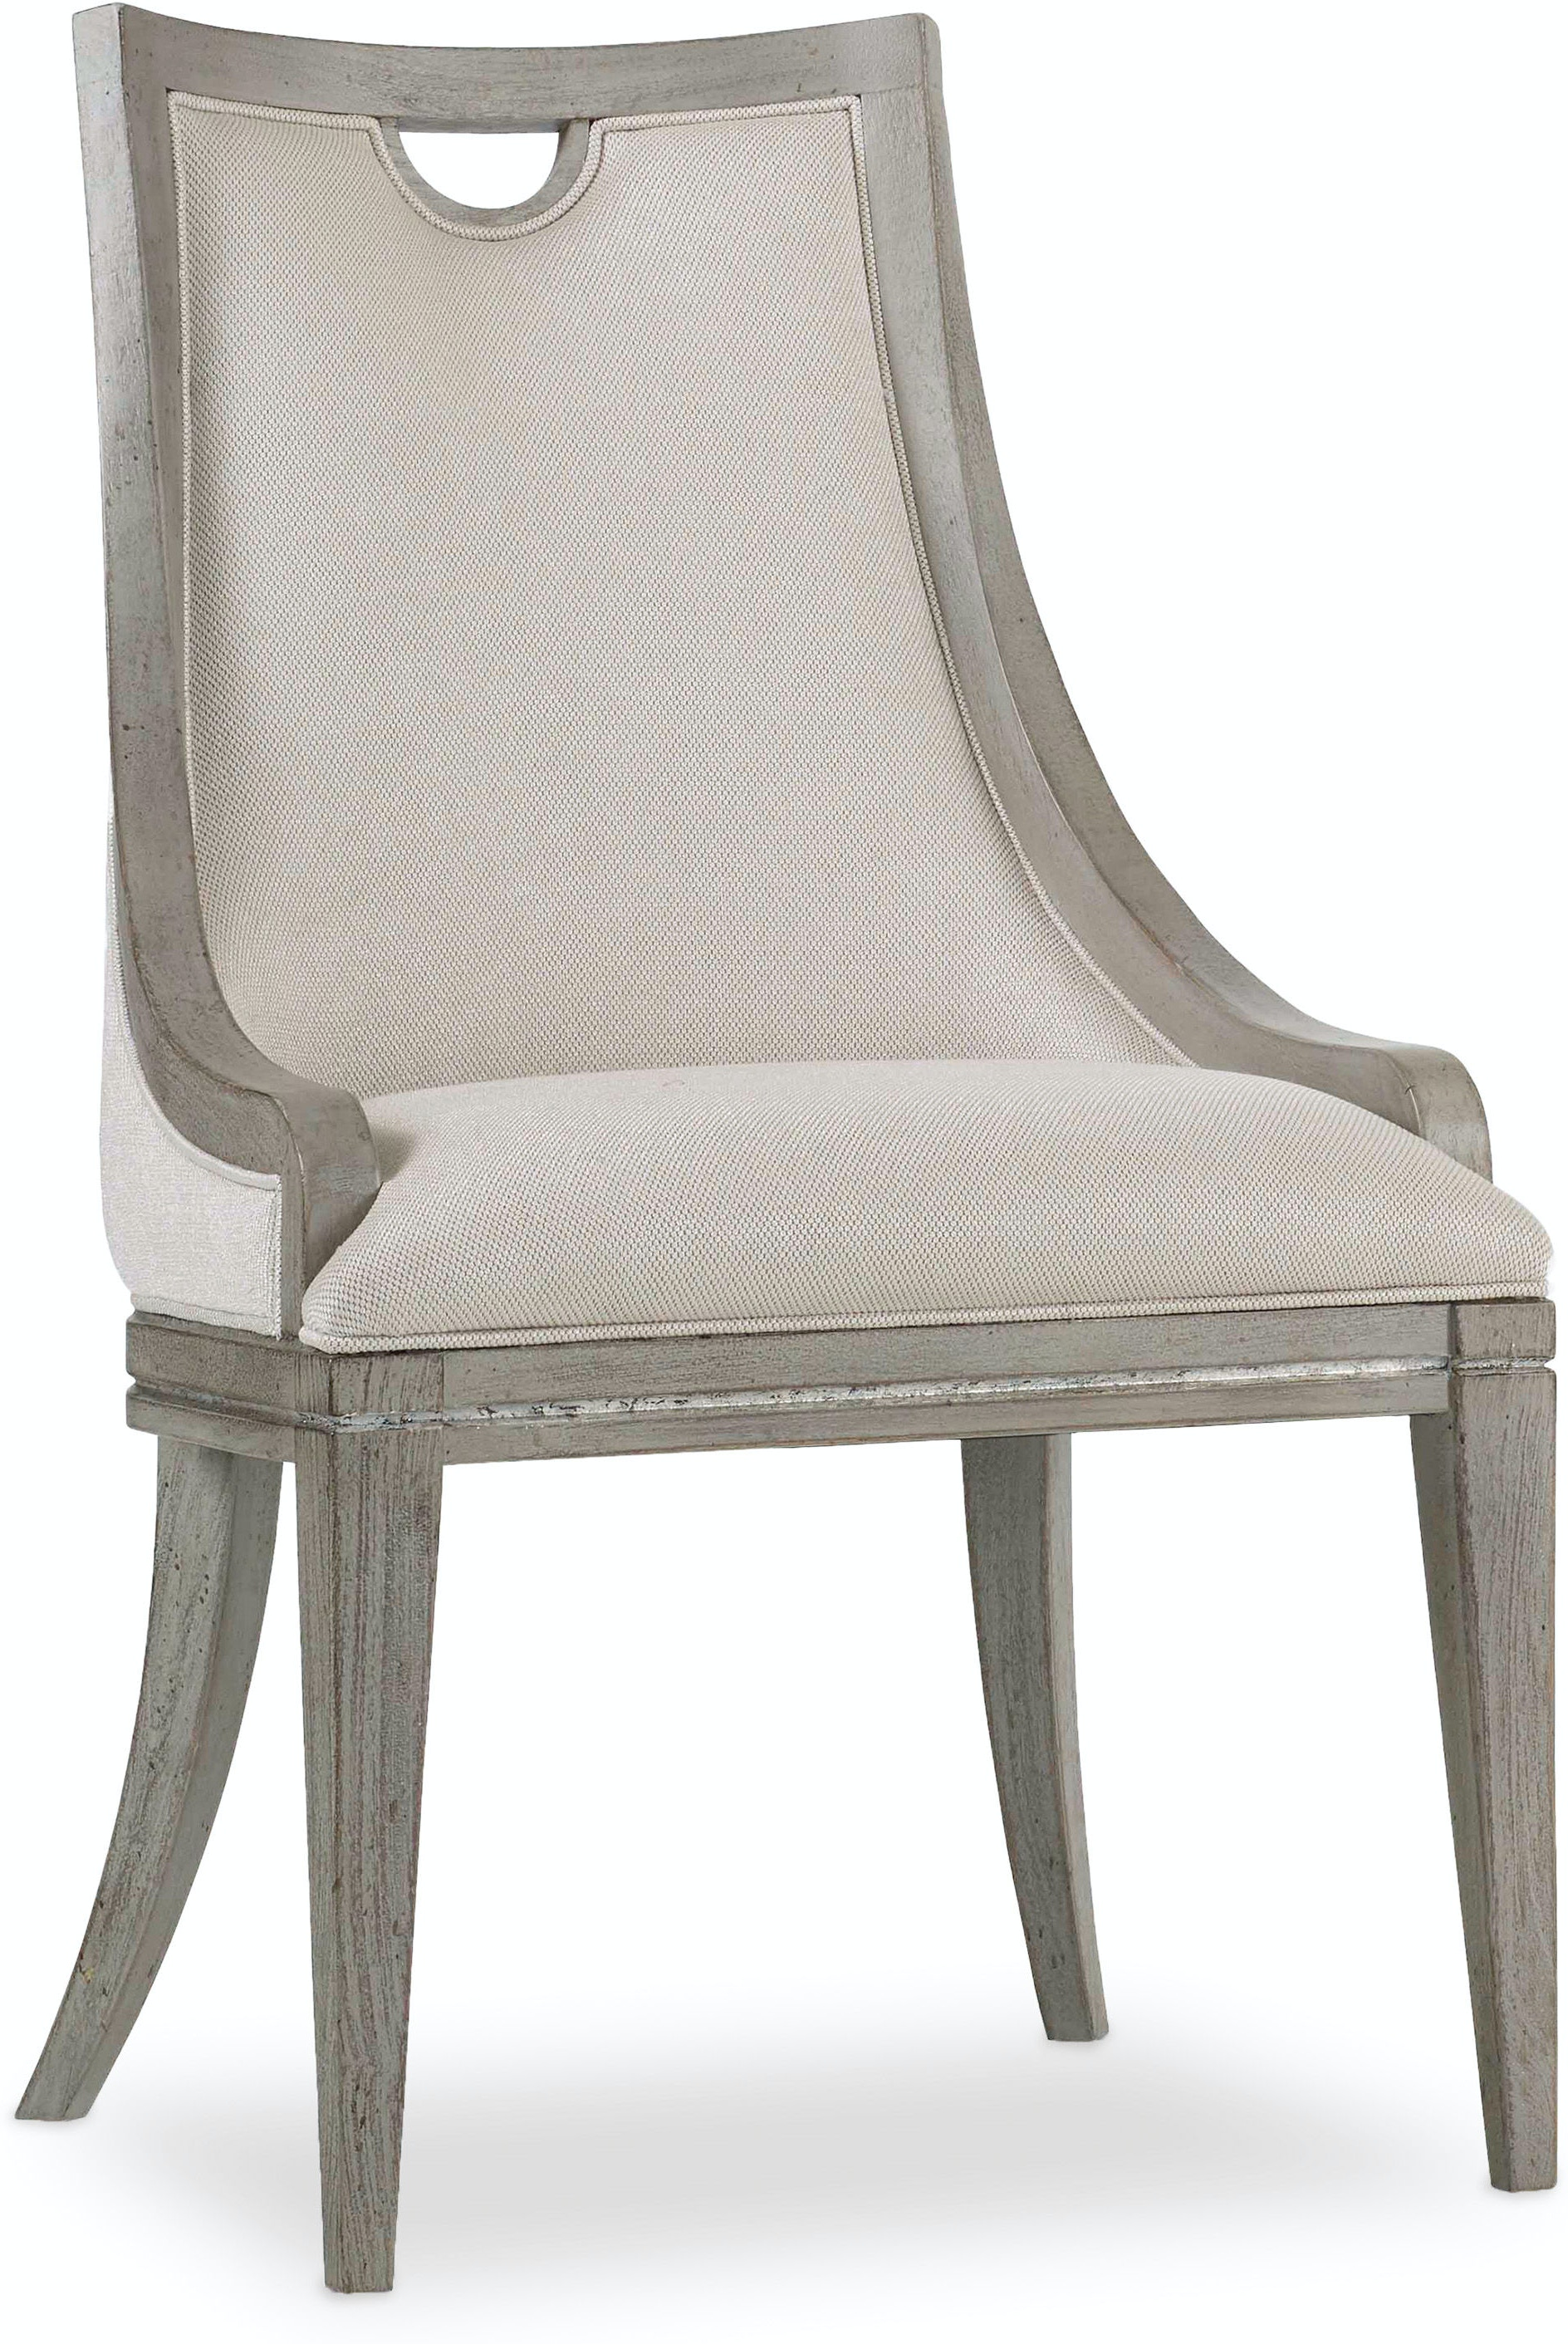 Super Hooker Furniture Dining Room Sanctuary Upholstered Side Bralicious Painted Fabric Chair Ideas Braliciousco